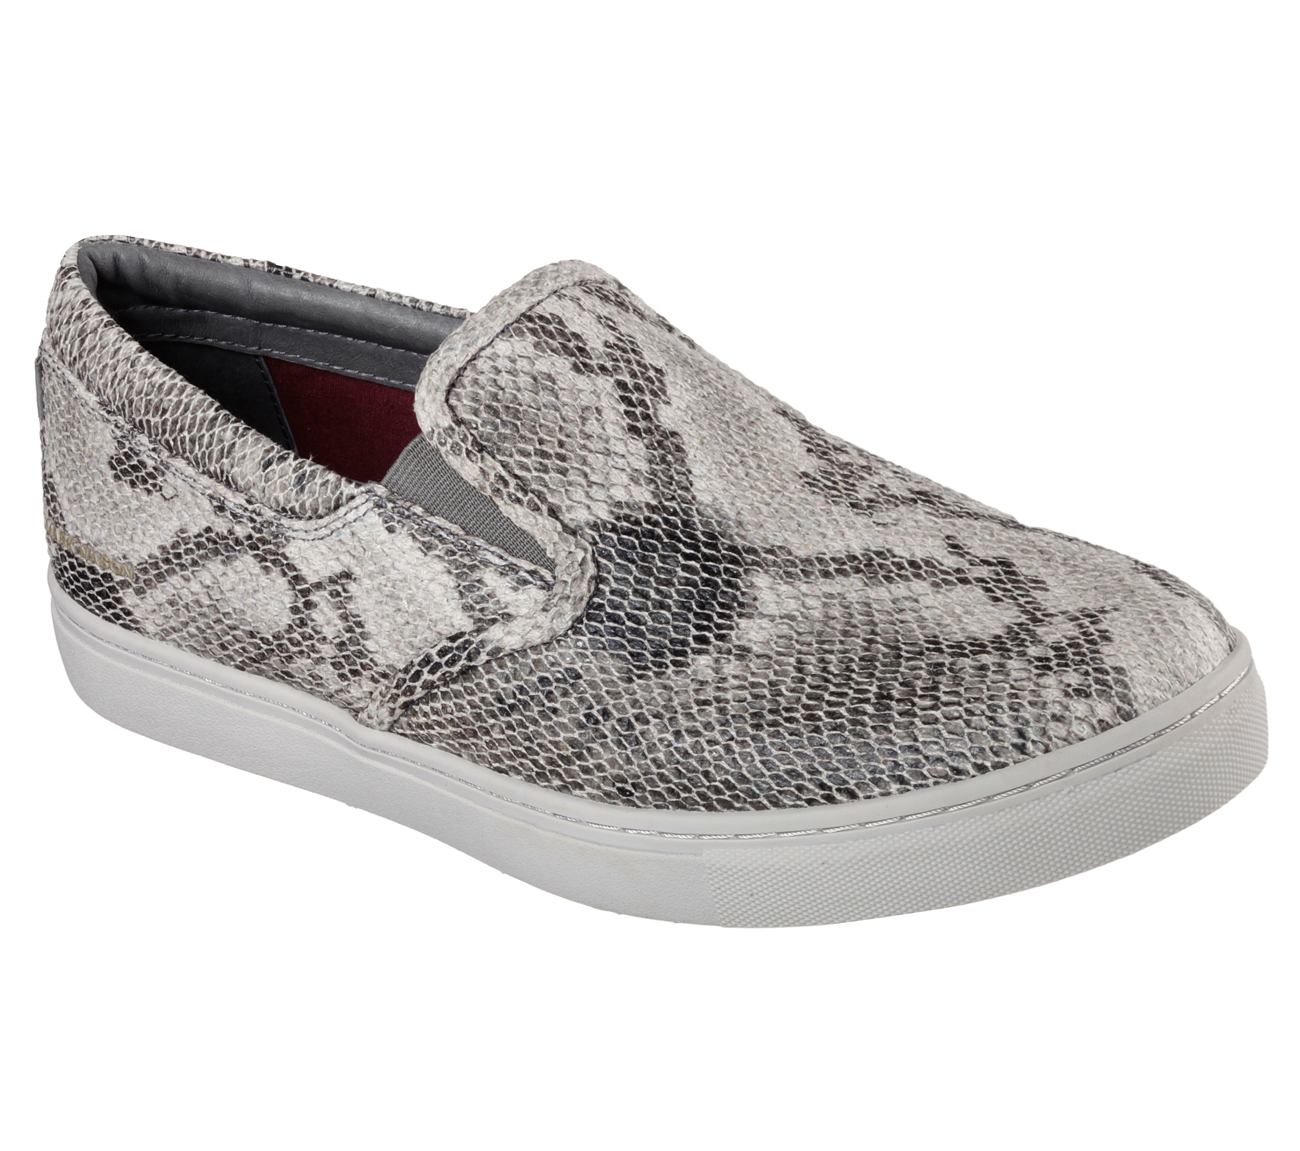 nason single girls On sale today 50% off skechers women's mark nason jett 68744/burg burgundy is going fast get it while you can.